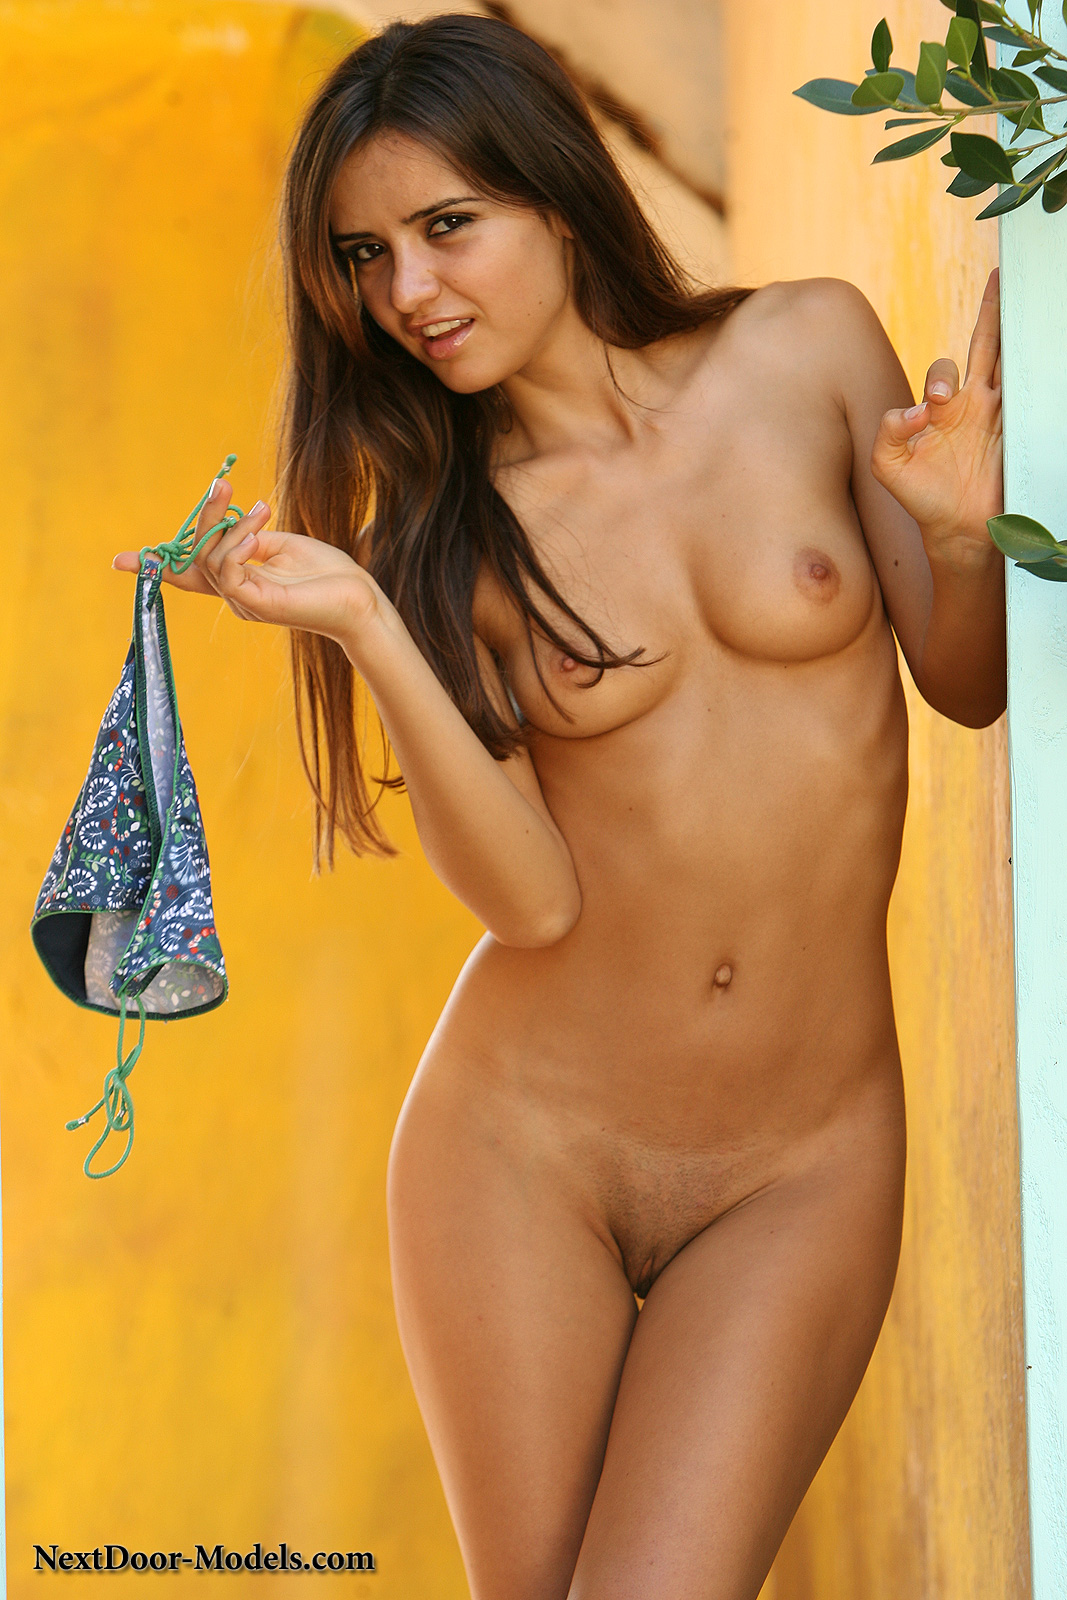 Much Girl next door nude ella consider, that